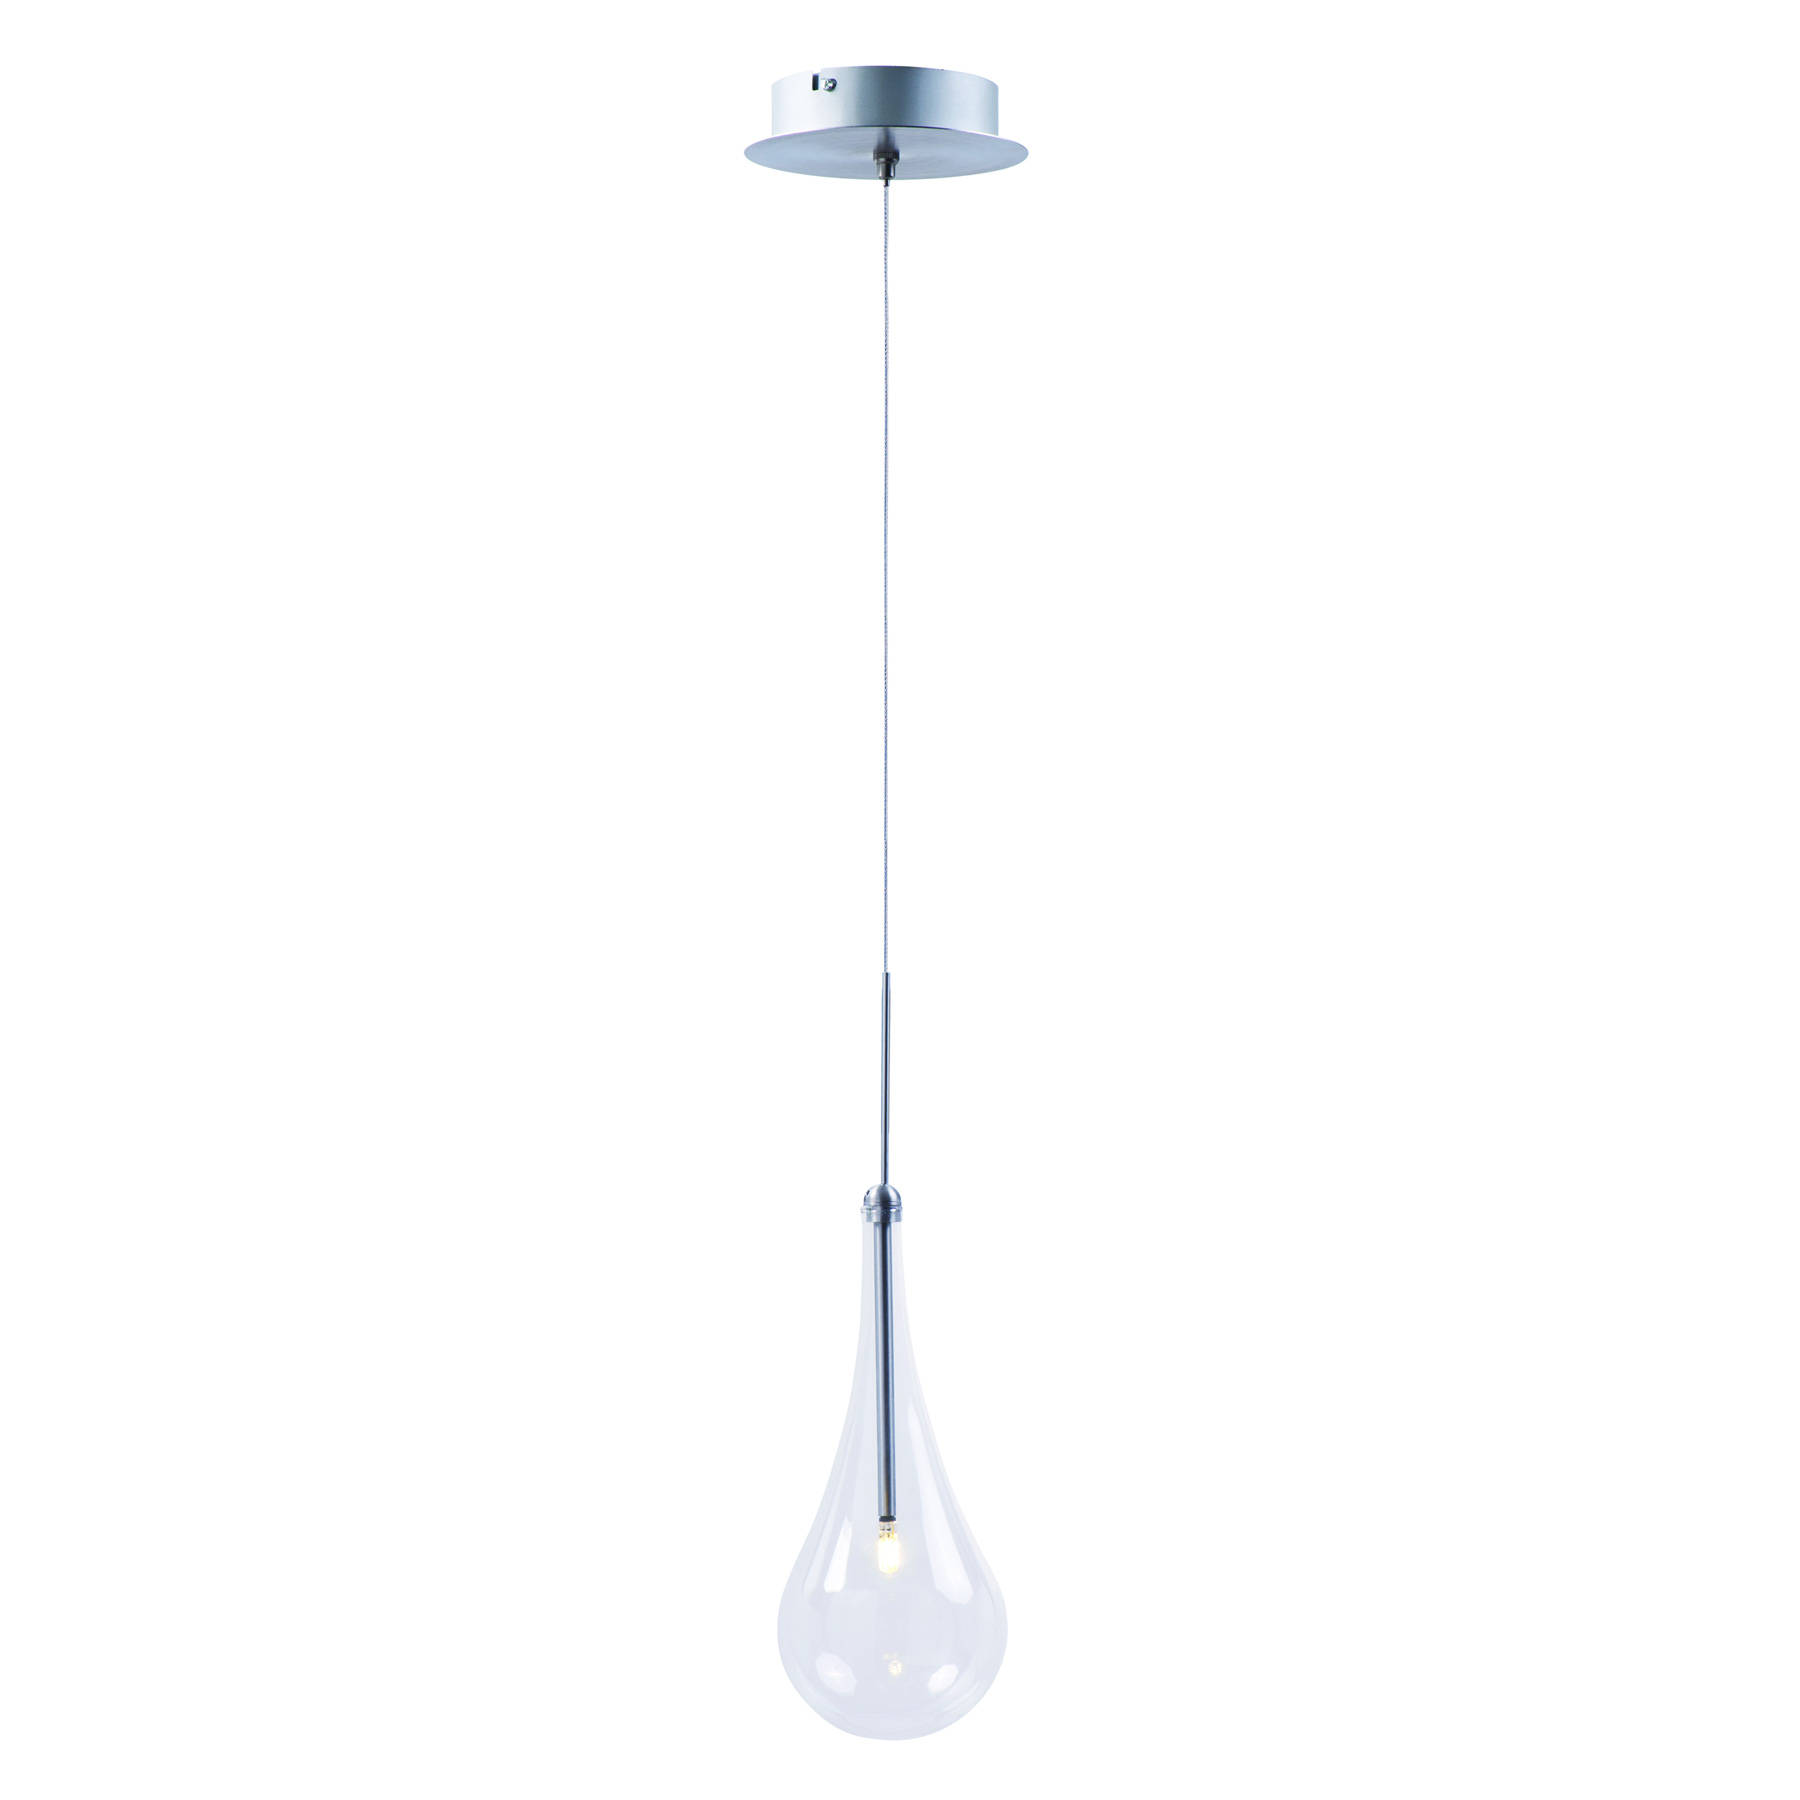 opus led elan pendant lighting by